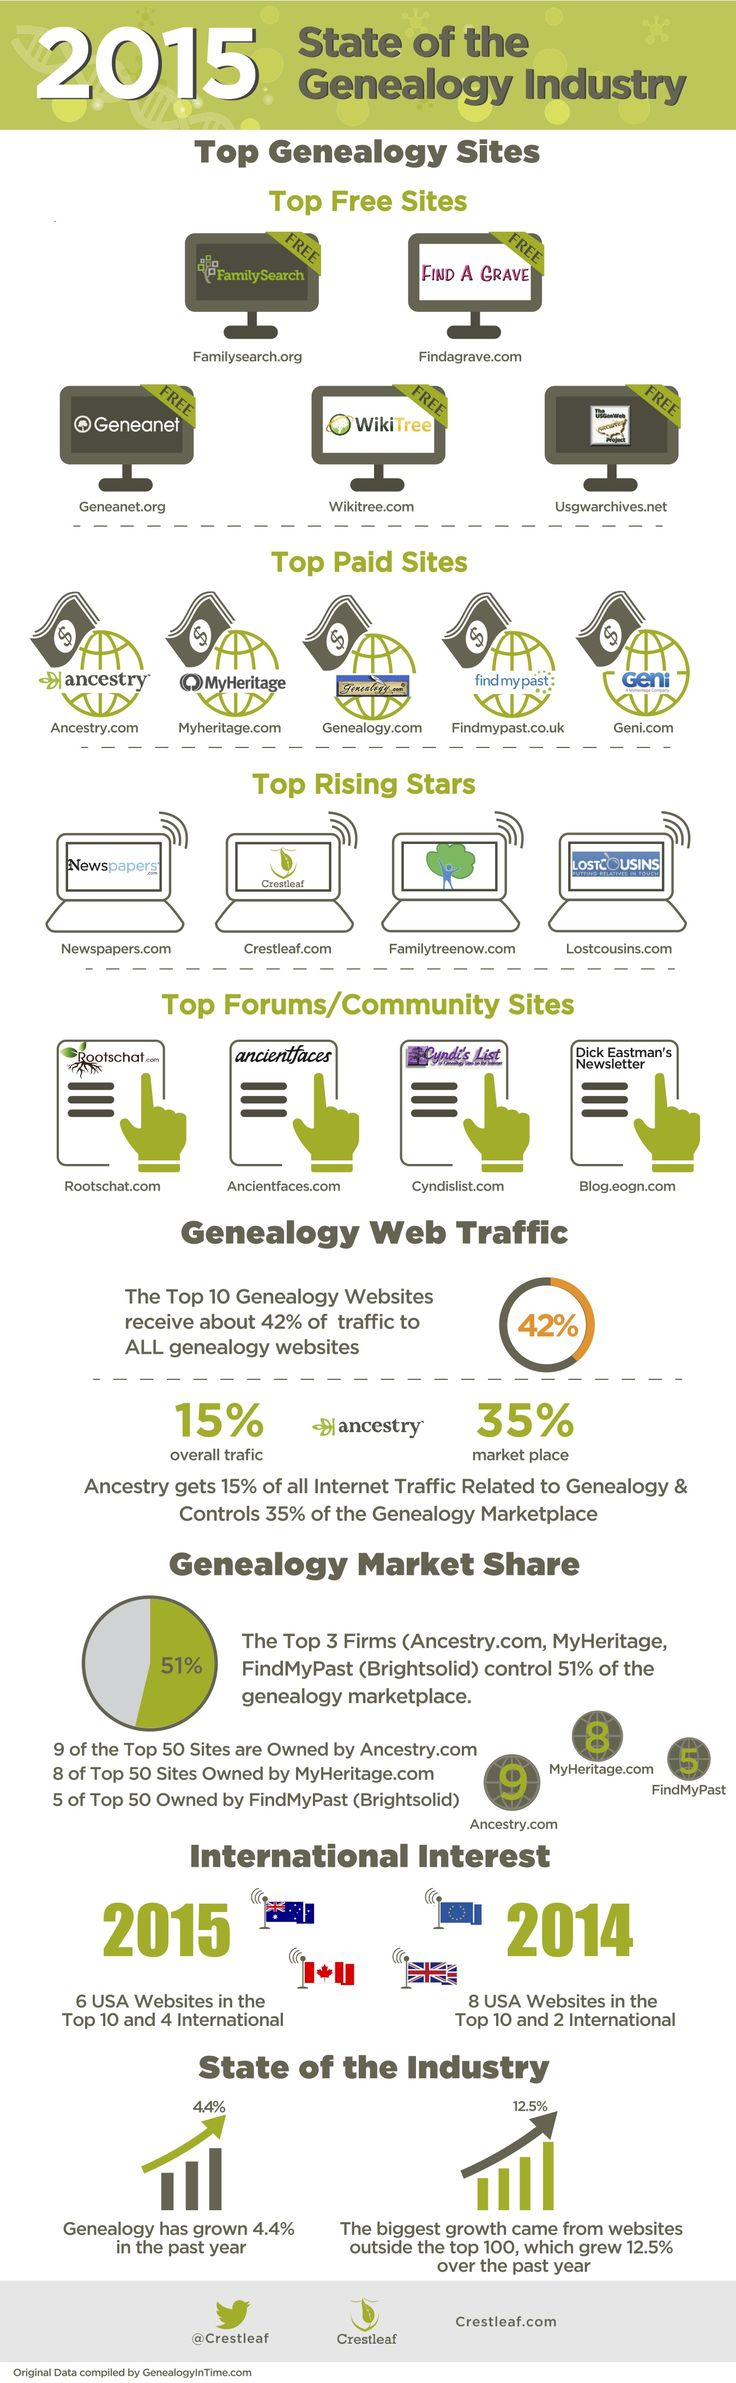 The 2015 State of #Genealogy Industry #infographic with a list of top genealogy websites